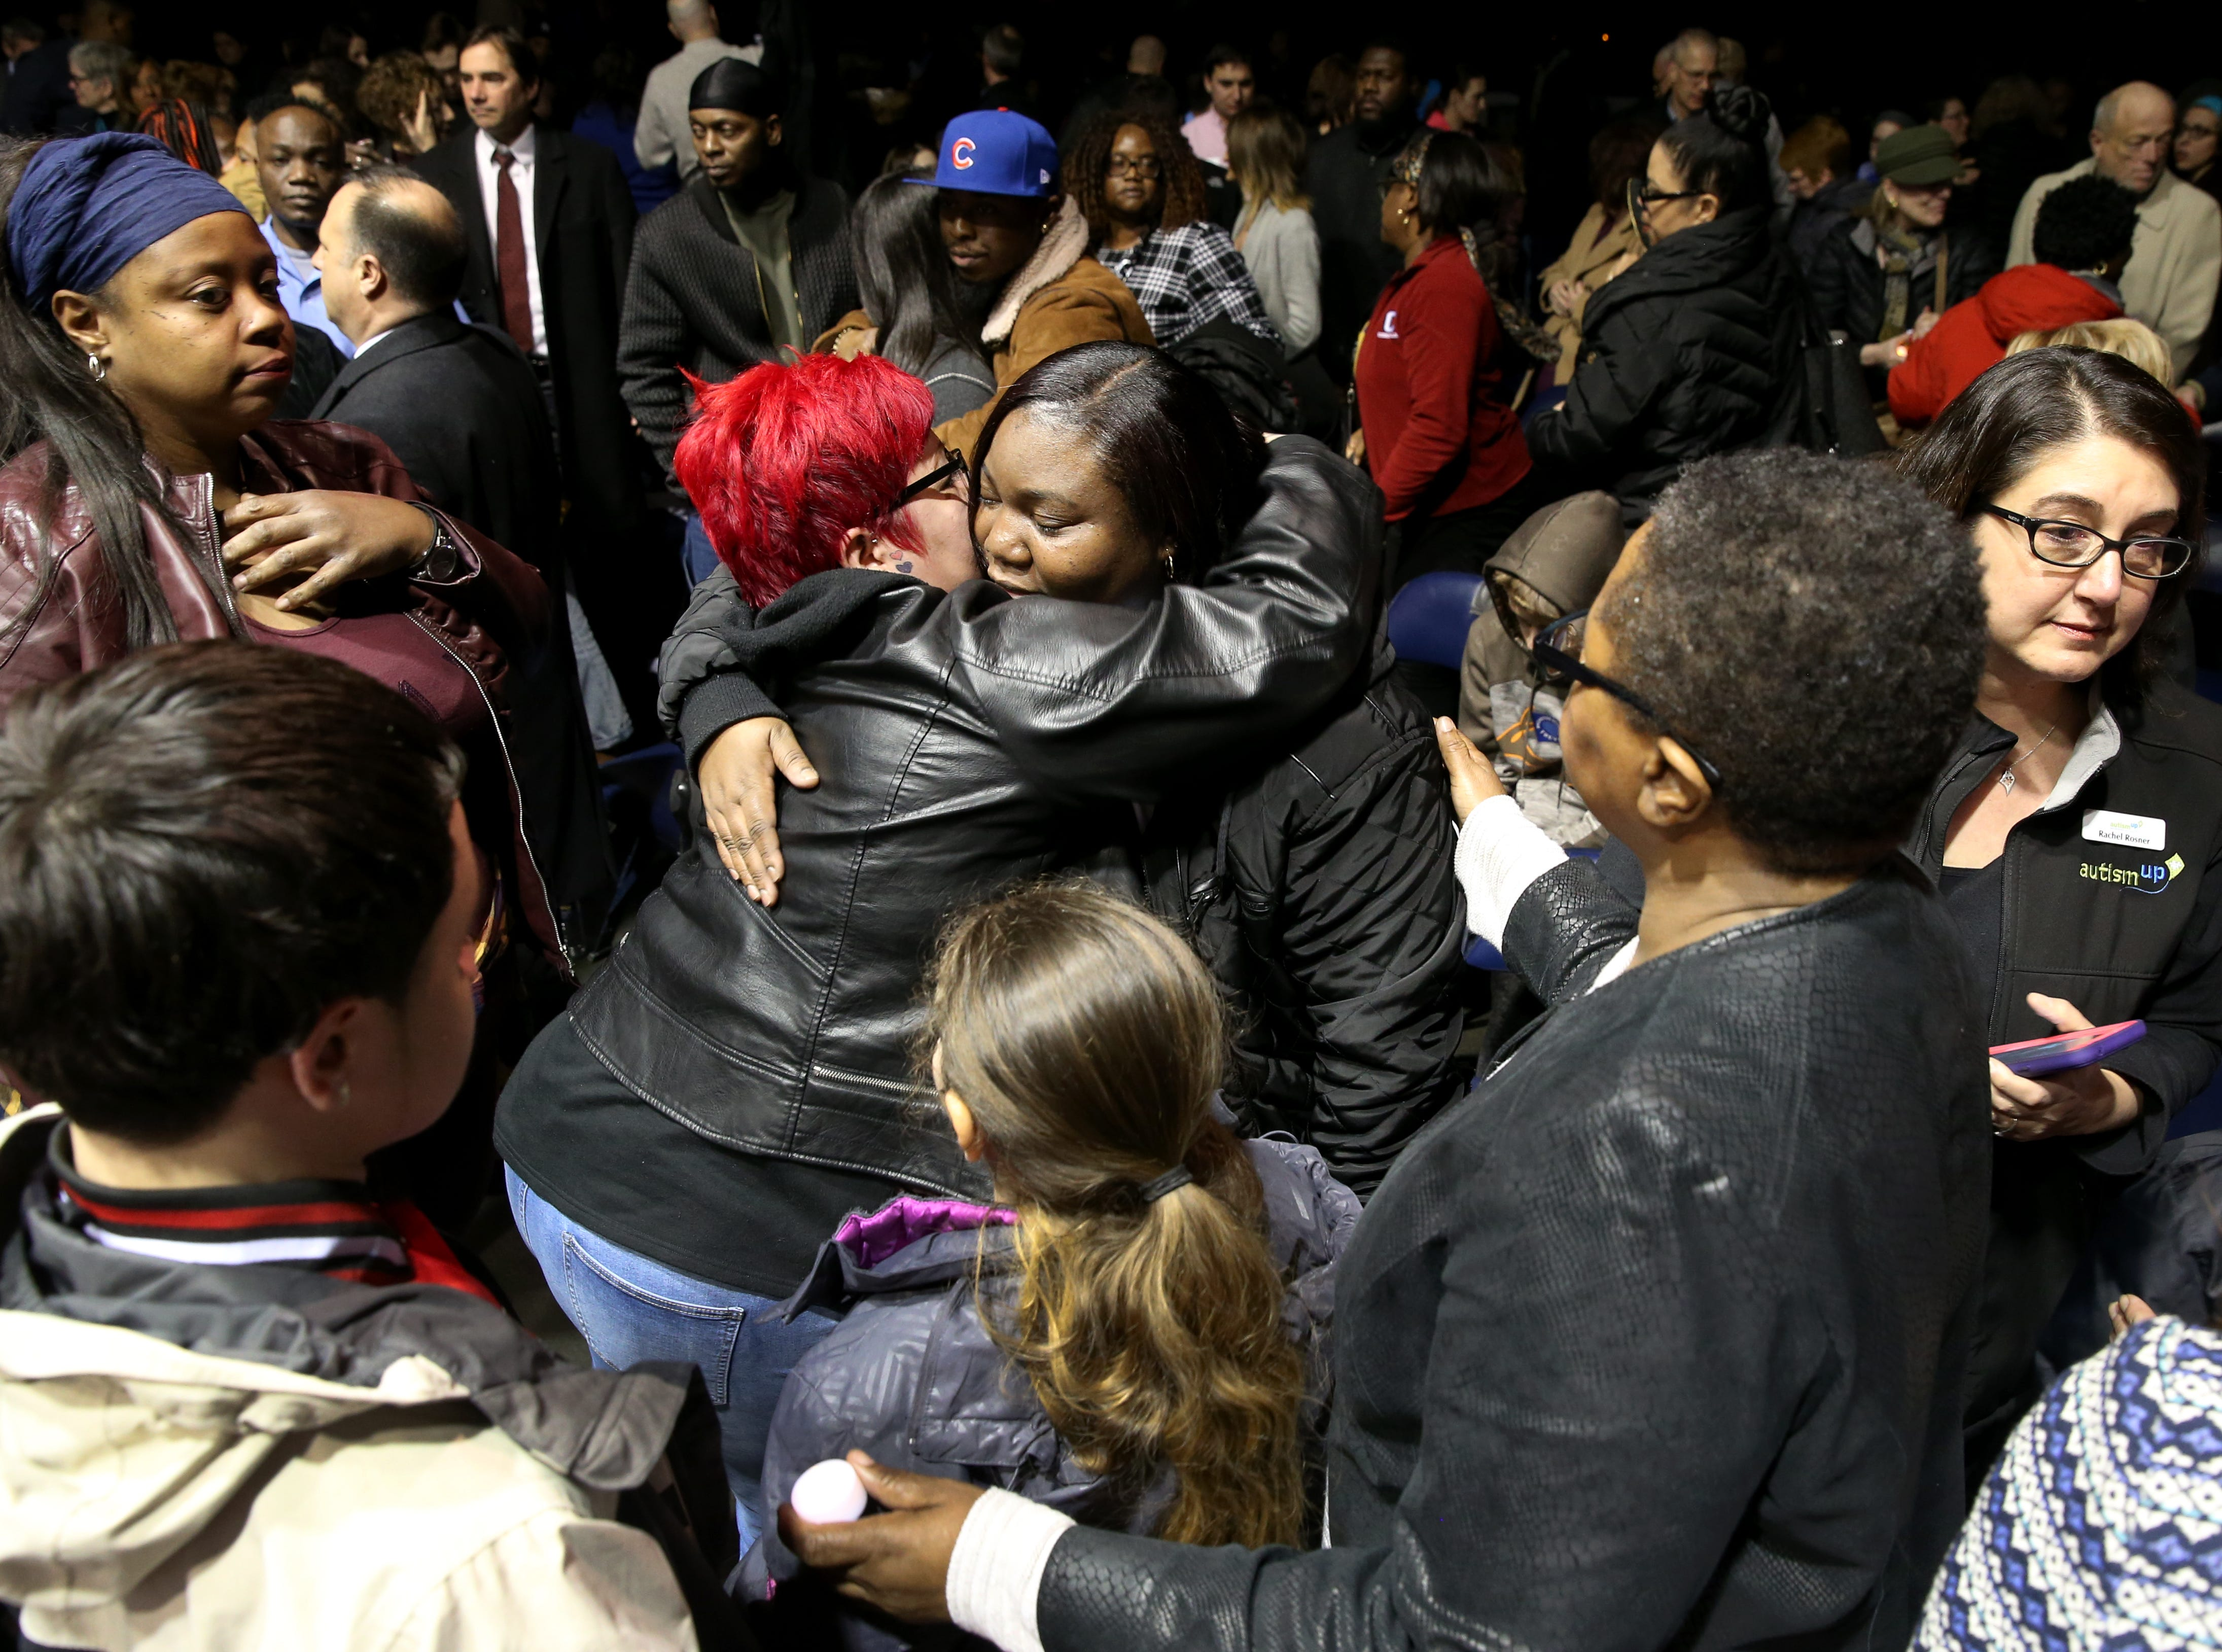 Carrie Houston, mother of Trevyan Rowe, is embraced by many after the vigil for her son whose disappearance brought an outpouring of community support.  I held my camera over my head and wasn't looking thought the view finder when I made this photo. I was surprised to see how well it was composed, with Carrie Houston centered in an embrace and surrounded by a community expressing their condolences for the loss of  Trevyan Rowe.